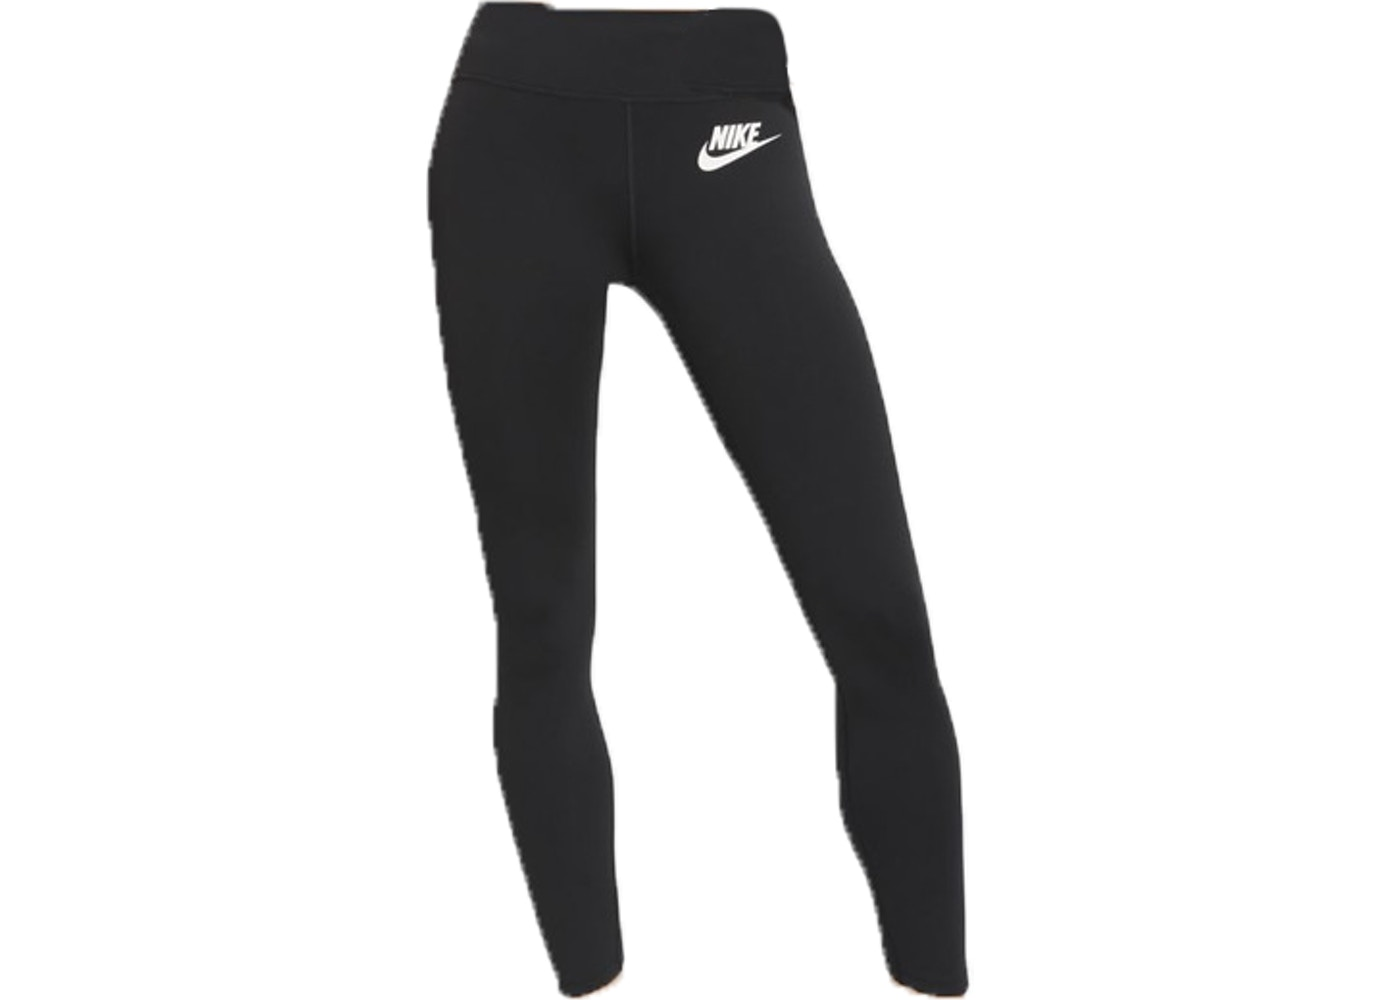 nike leggings x